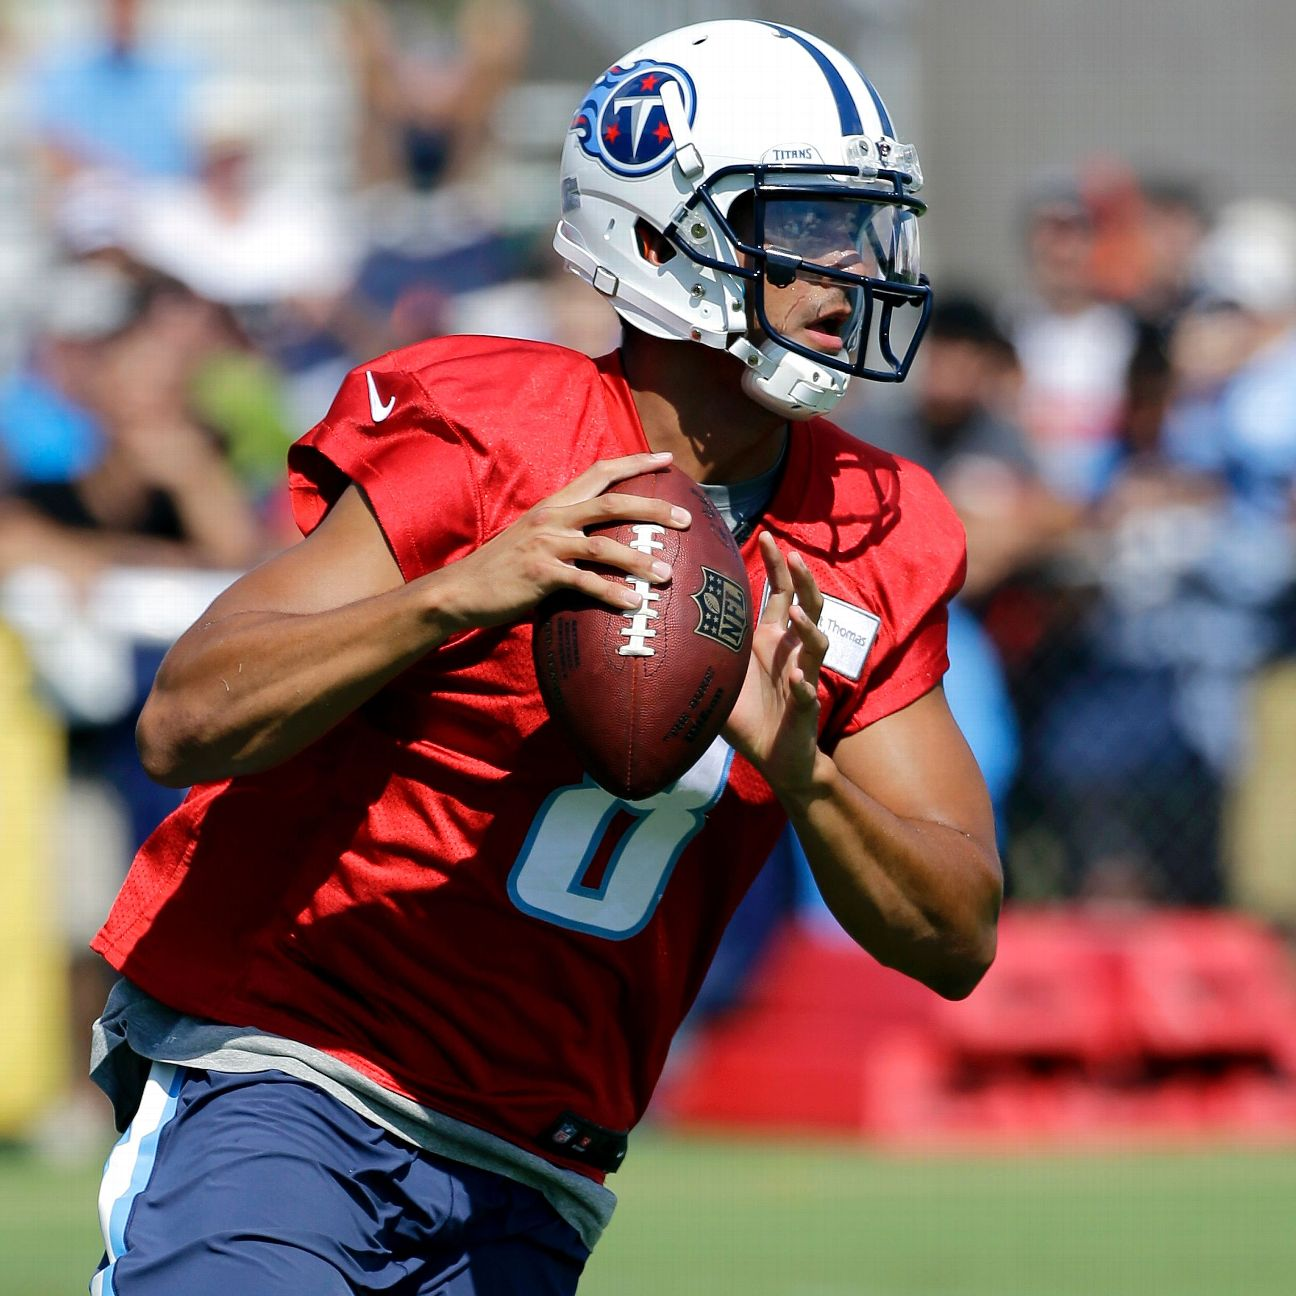 With Titans in pads, Marcus Mariota will feel pass pressure Sun…